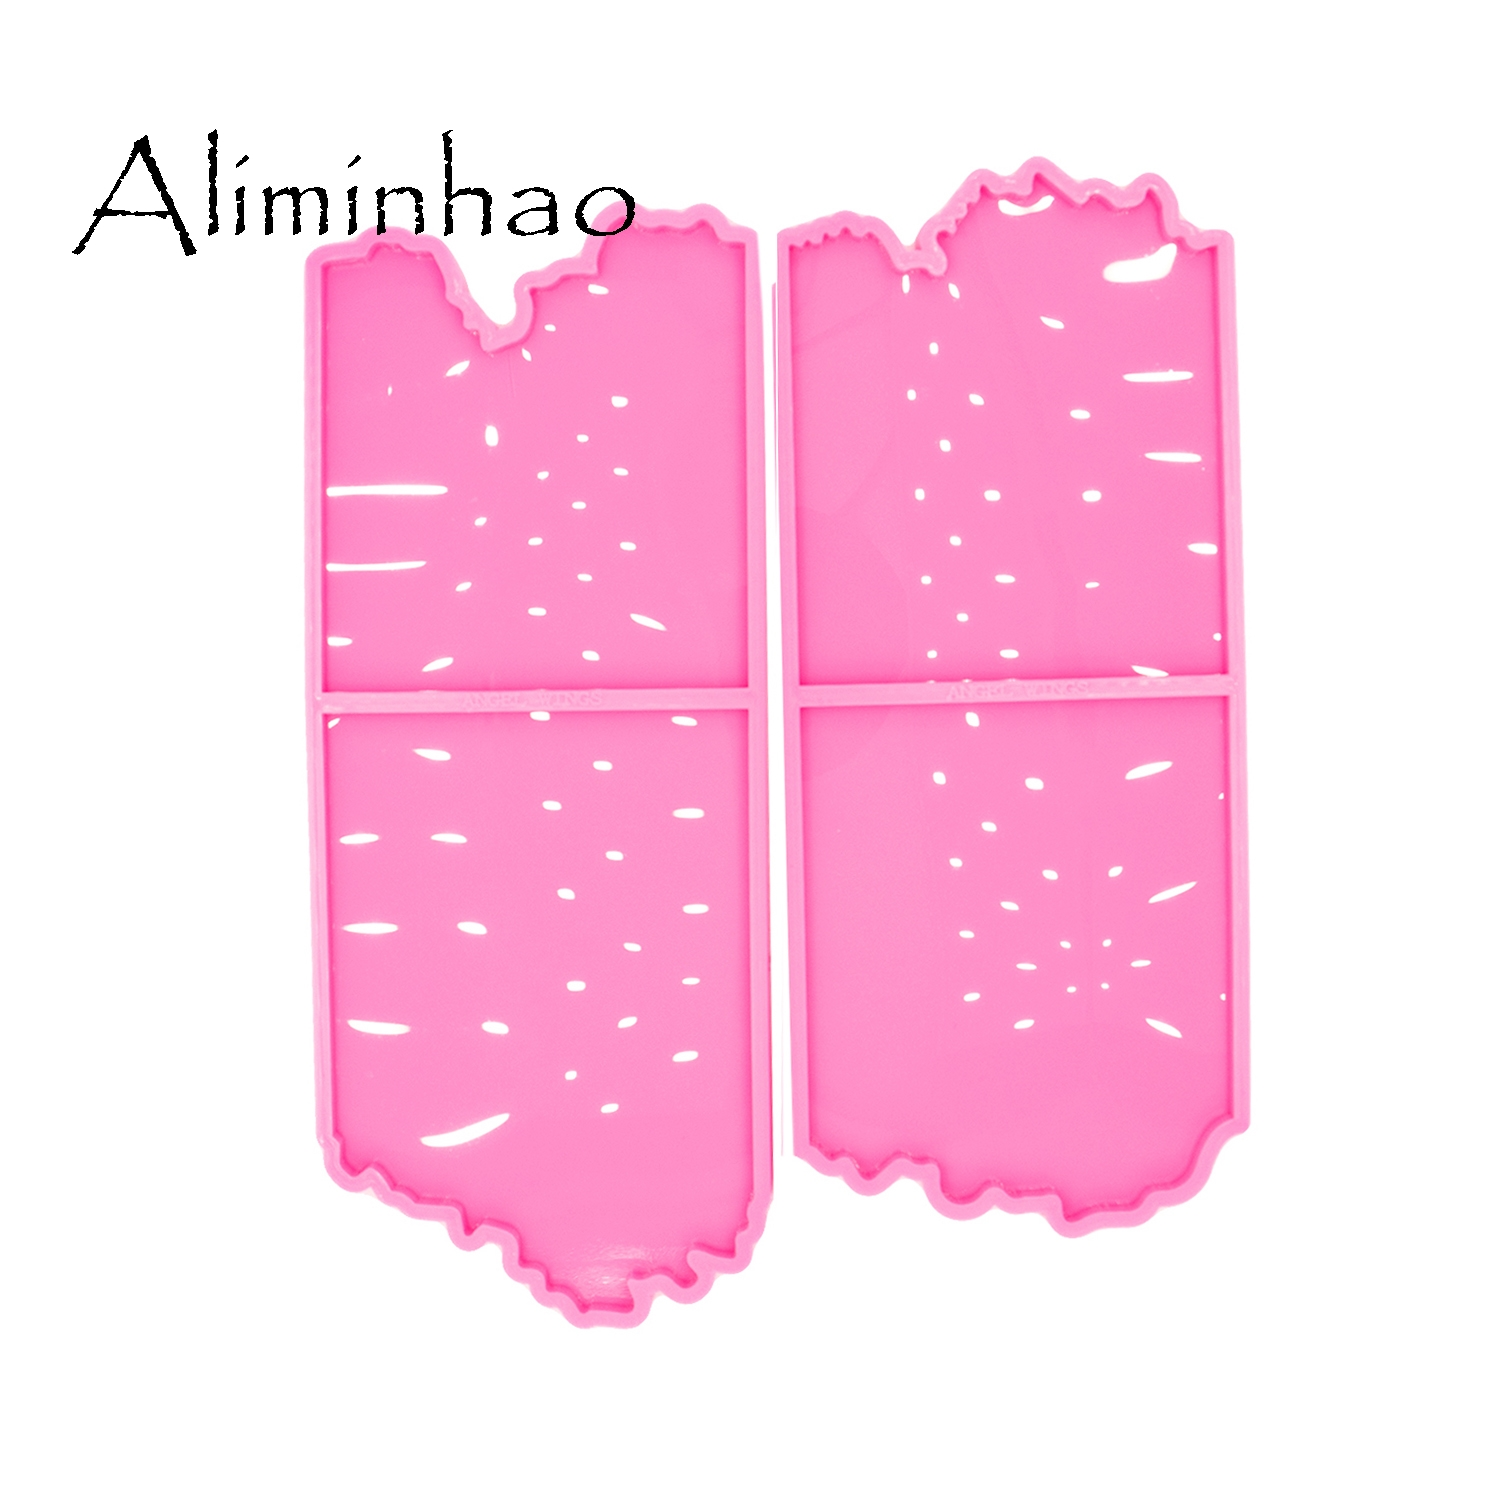 DY0456 2pc/set Shiny High Quality Square Shape Silicone Molds Epoxy Resin DIY Geode Coasters Mould